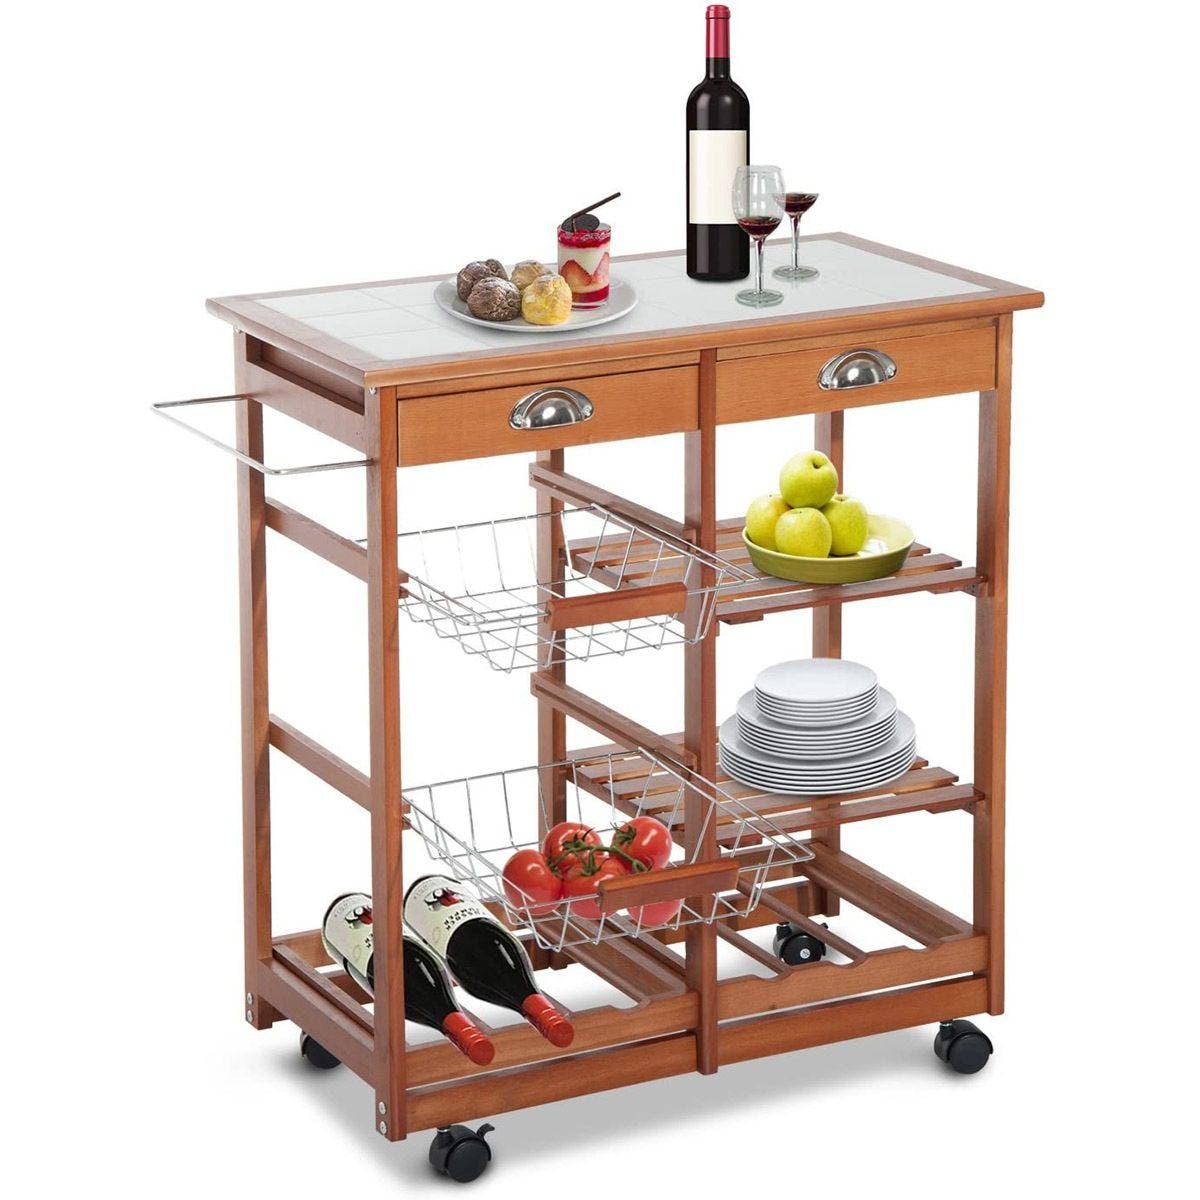 Wooden Kitchen Trolley Cart Drawers, 3 Shelves